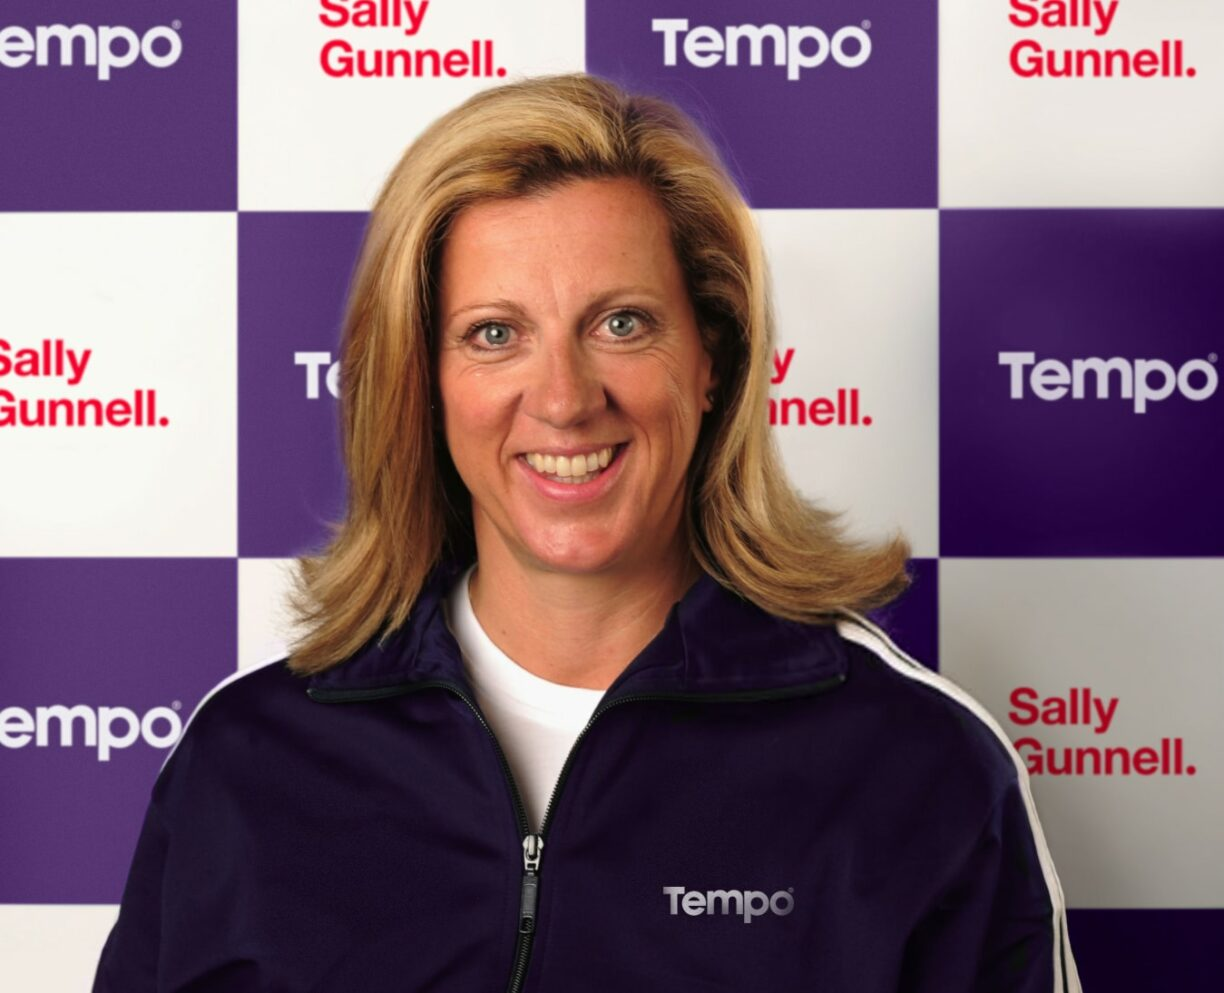 Sally Gunnell Joins Tempo